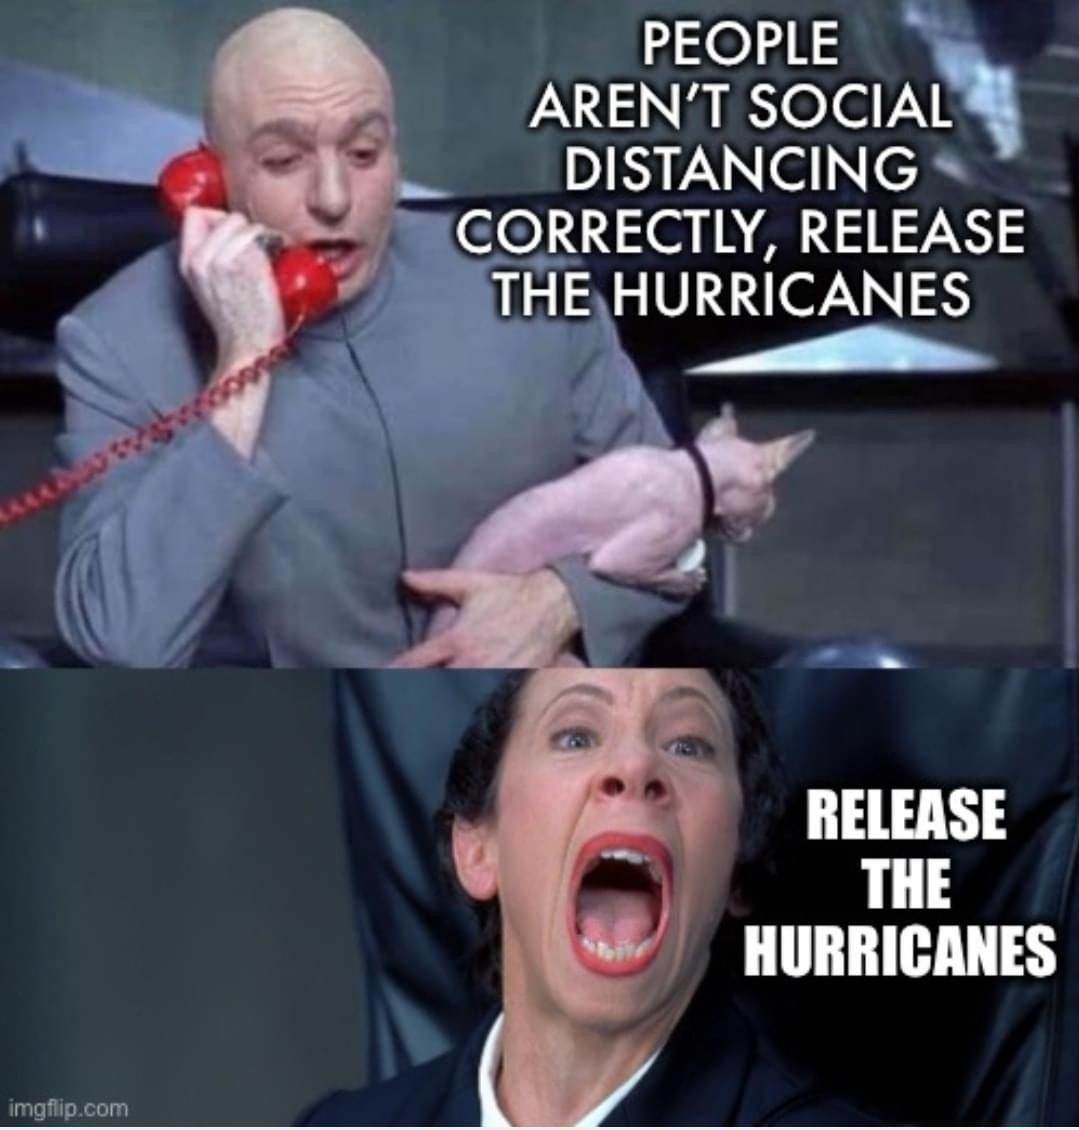 Pin By Horsedizzy On A 2020 In 2020 Hurricane Memes Memes Funny Signs